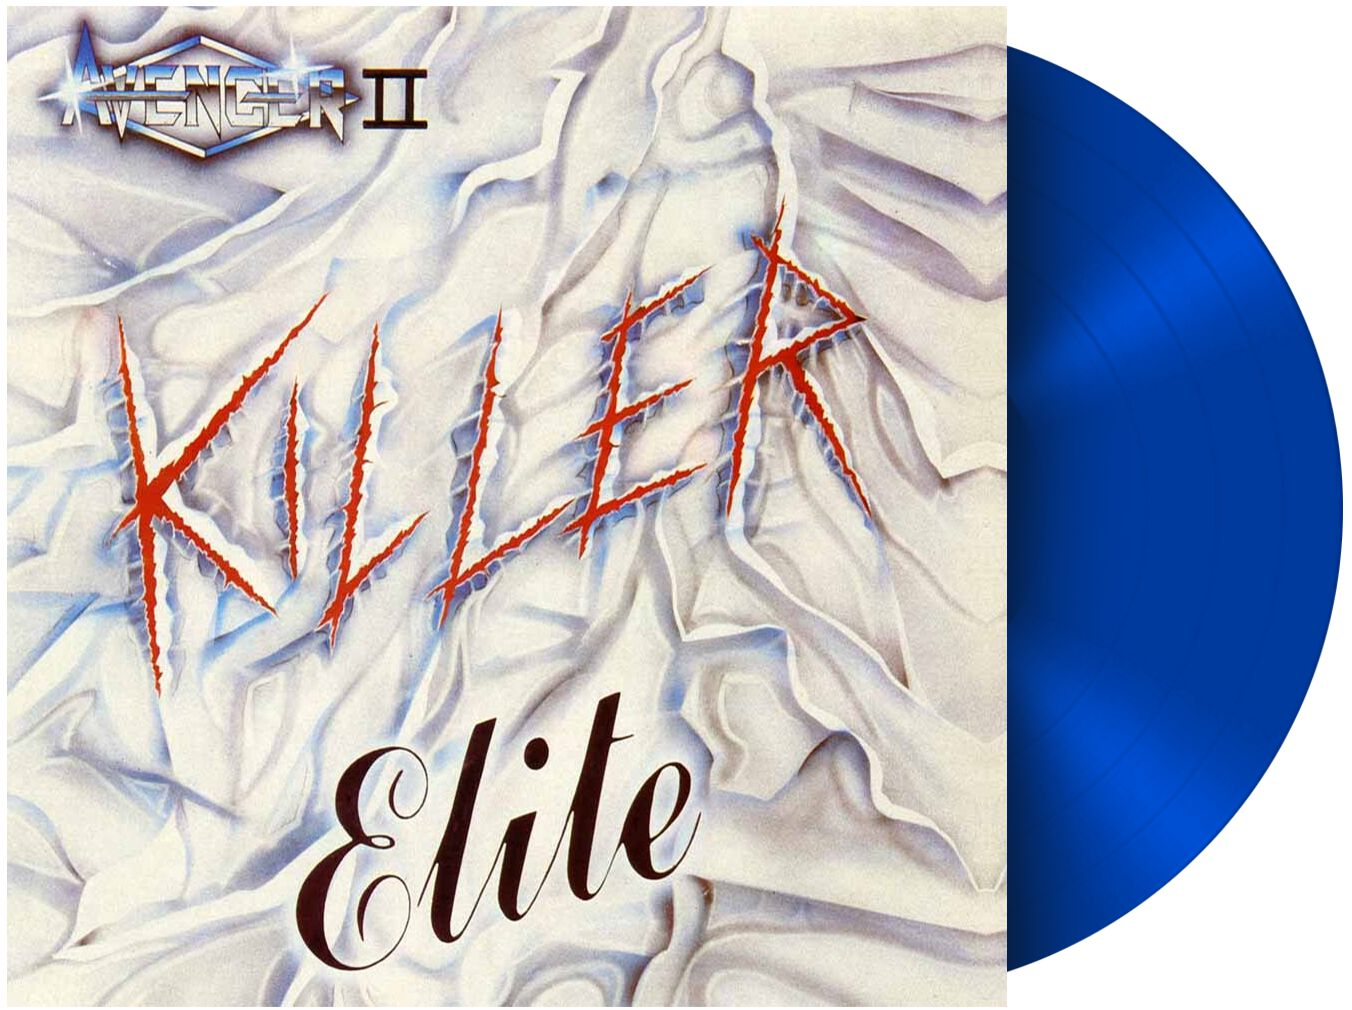 Image of Avenger Killer elite LP blau